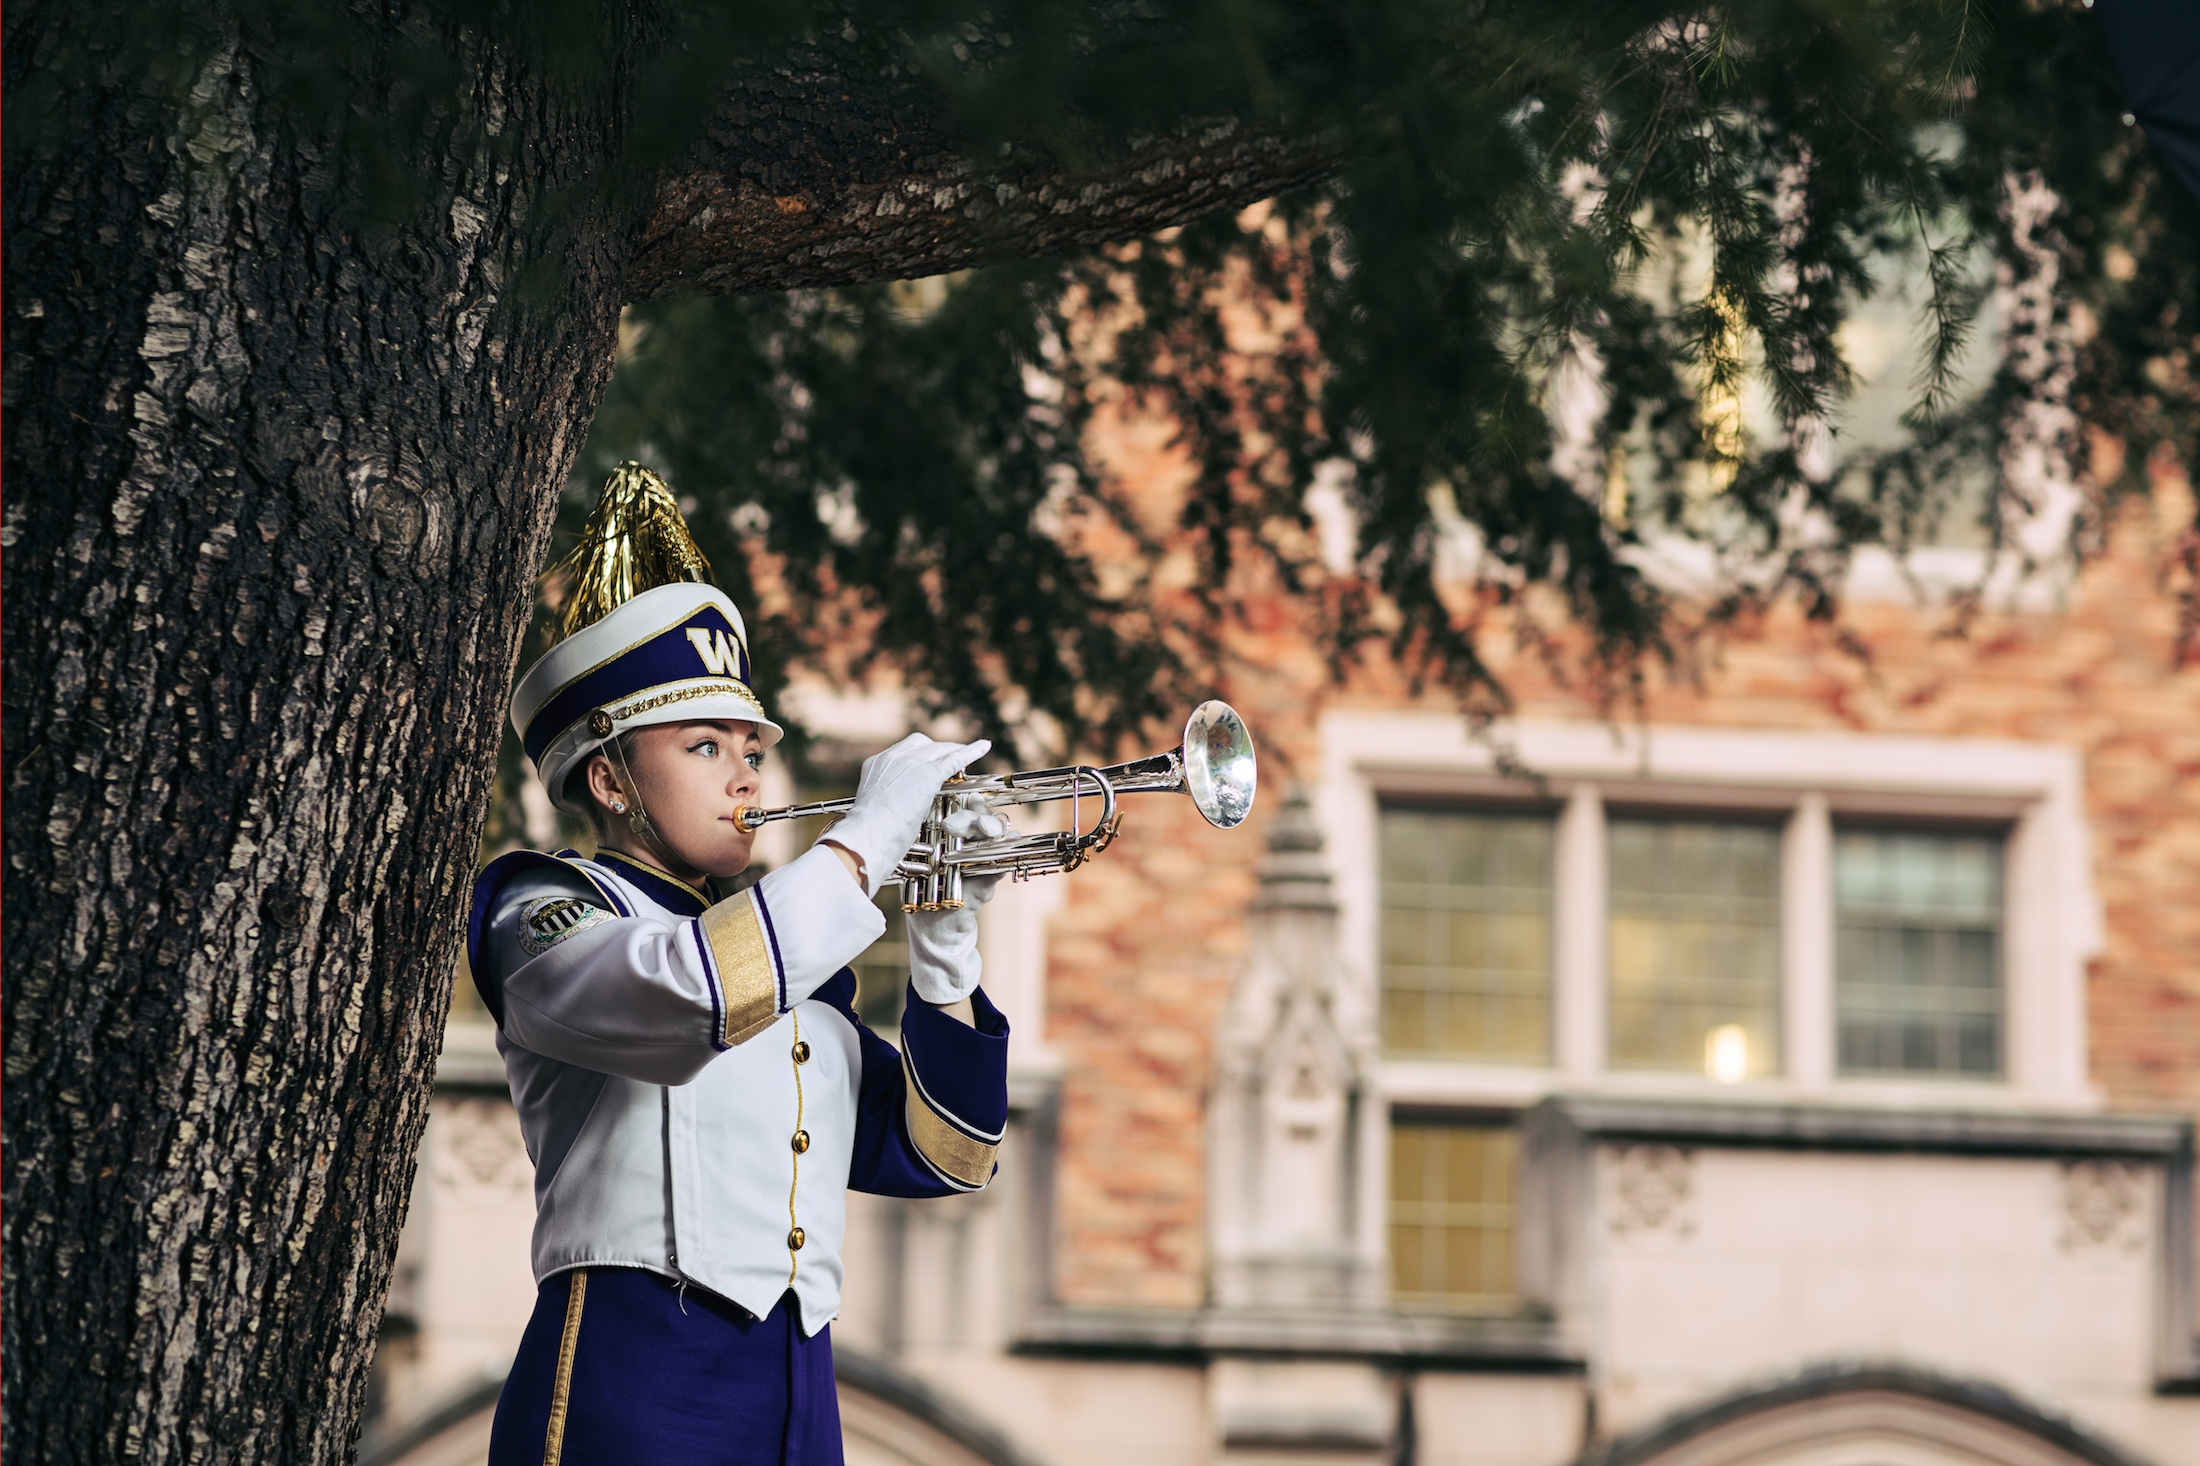 courtney porter, courtney porter uw, husky marching band, mary gates hall uw